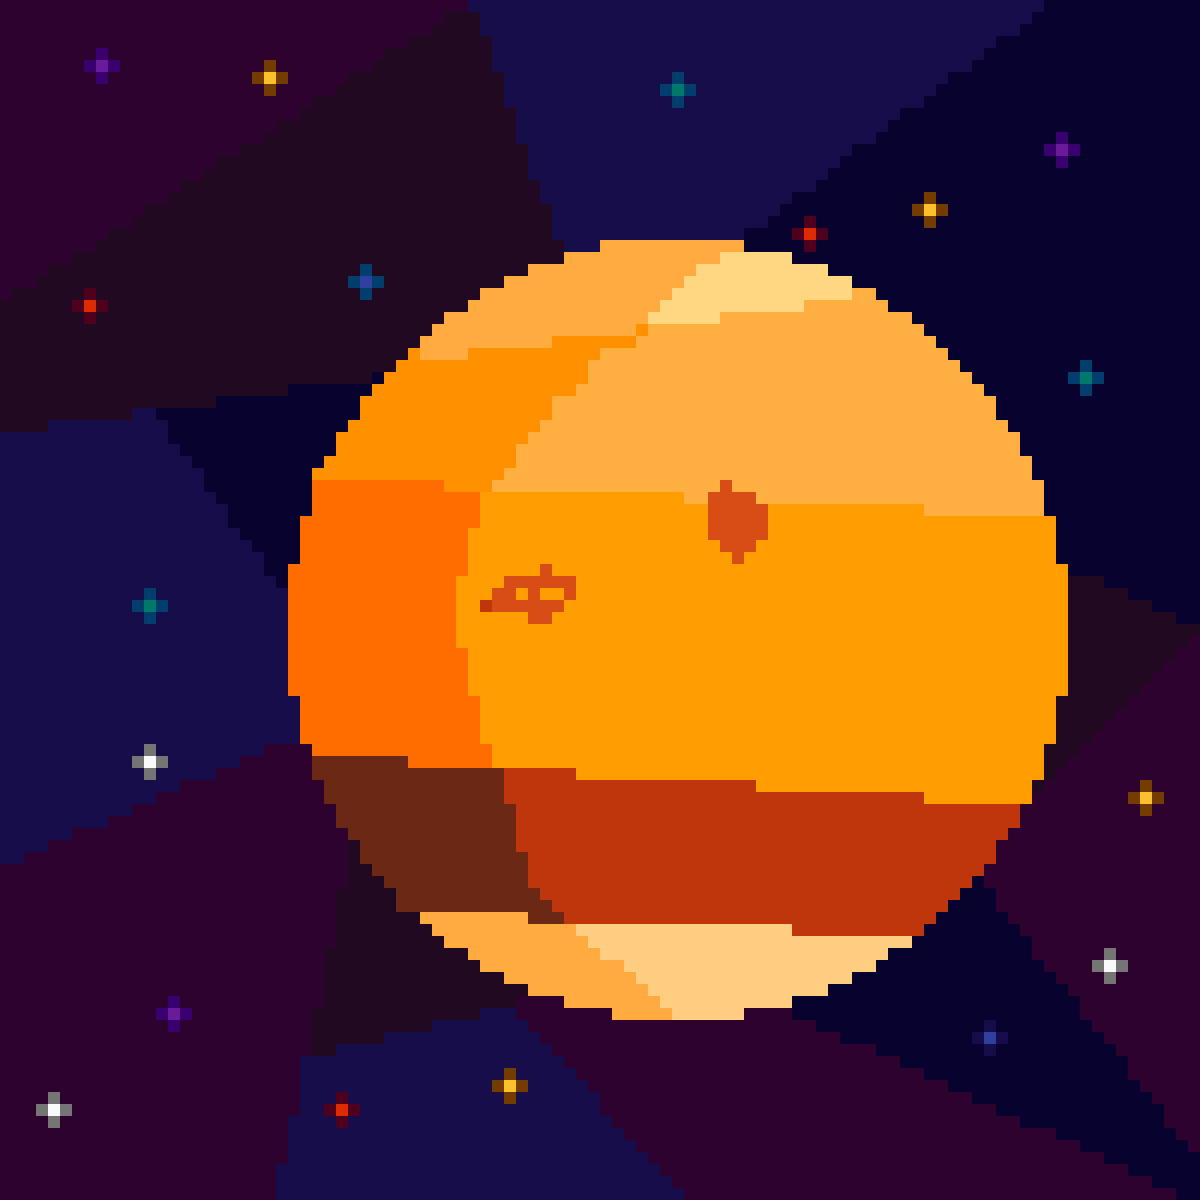 Mars by Cynical-Pixel